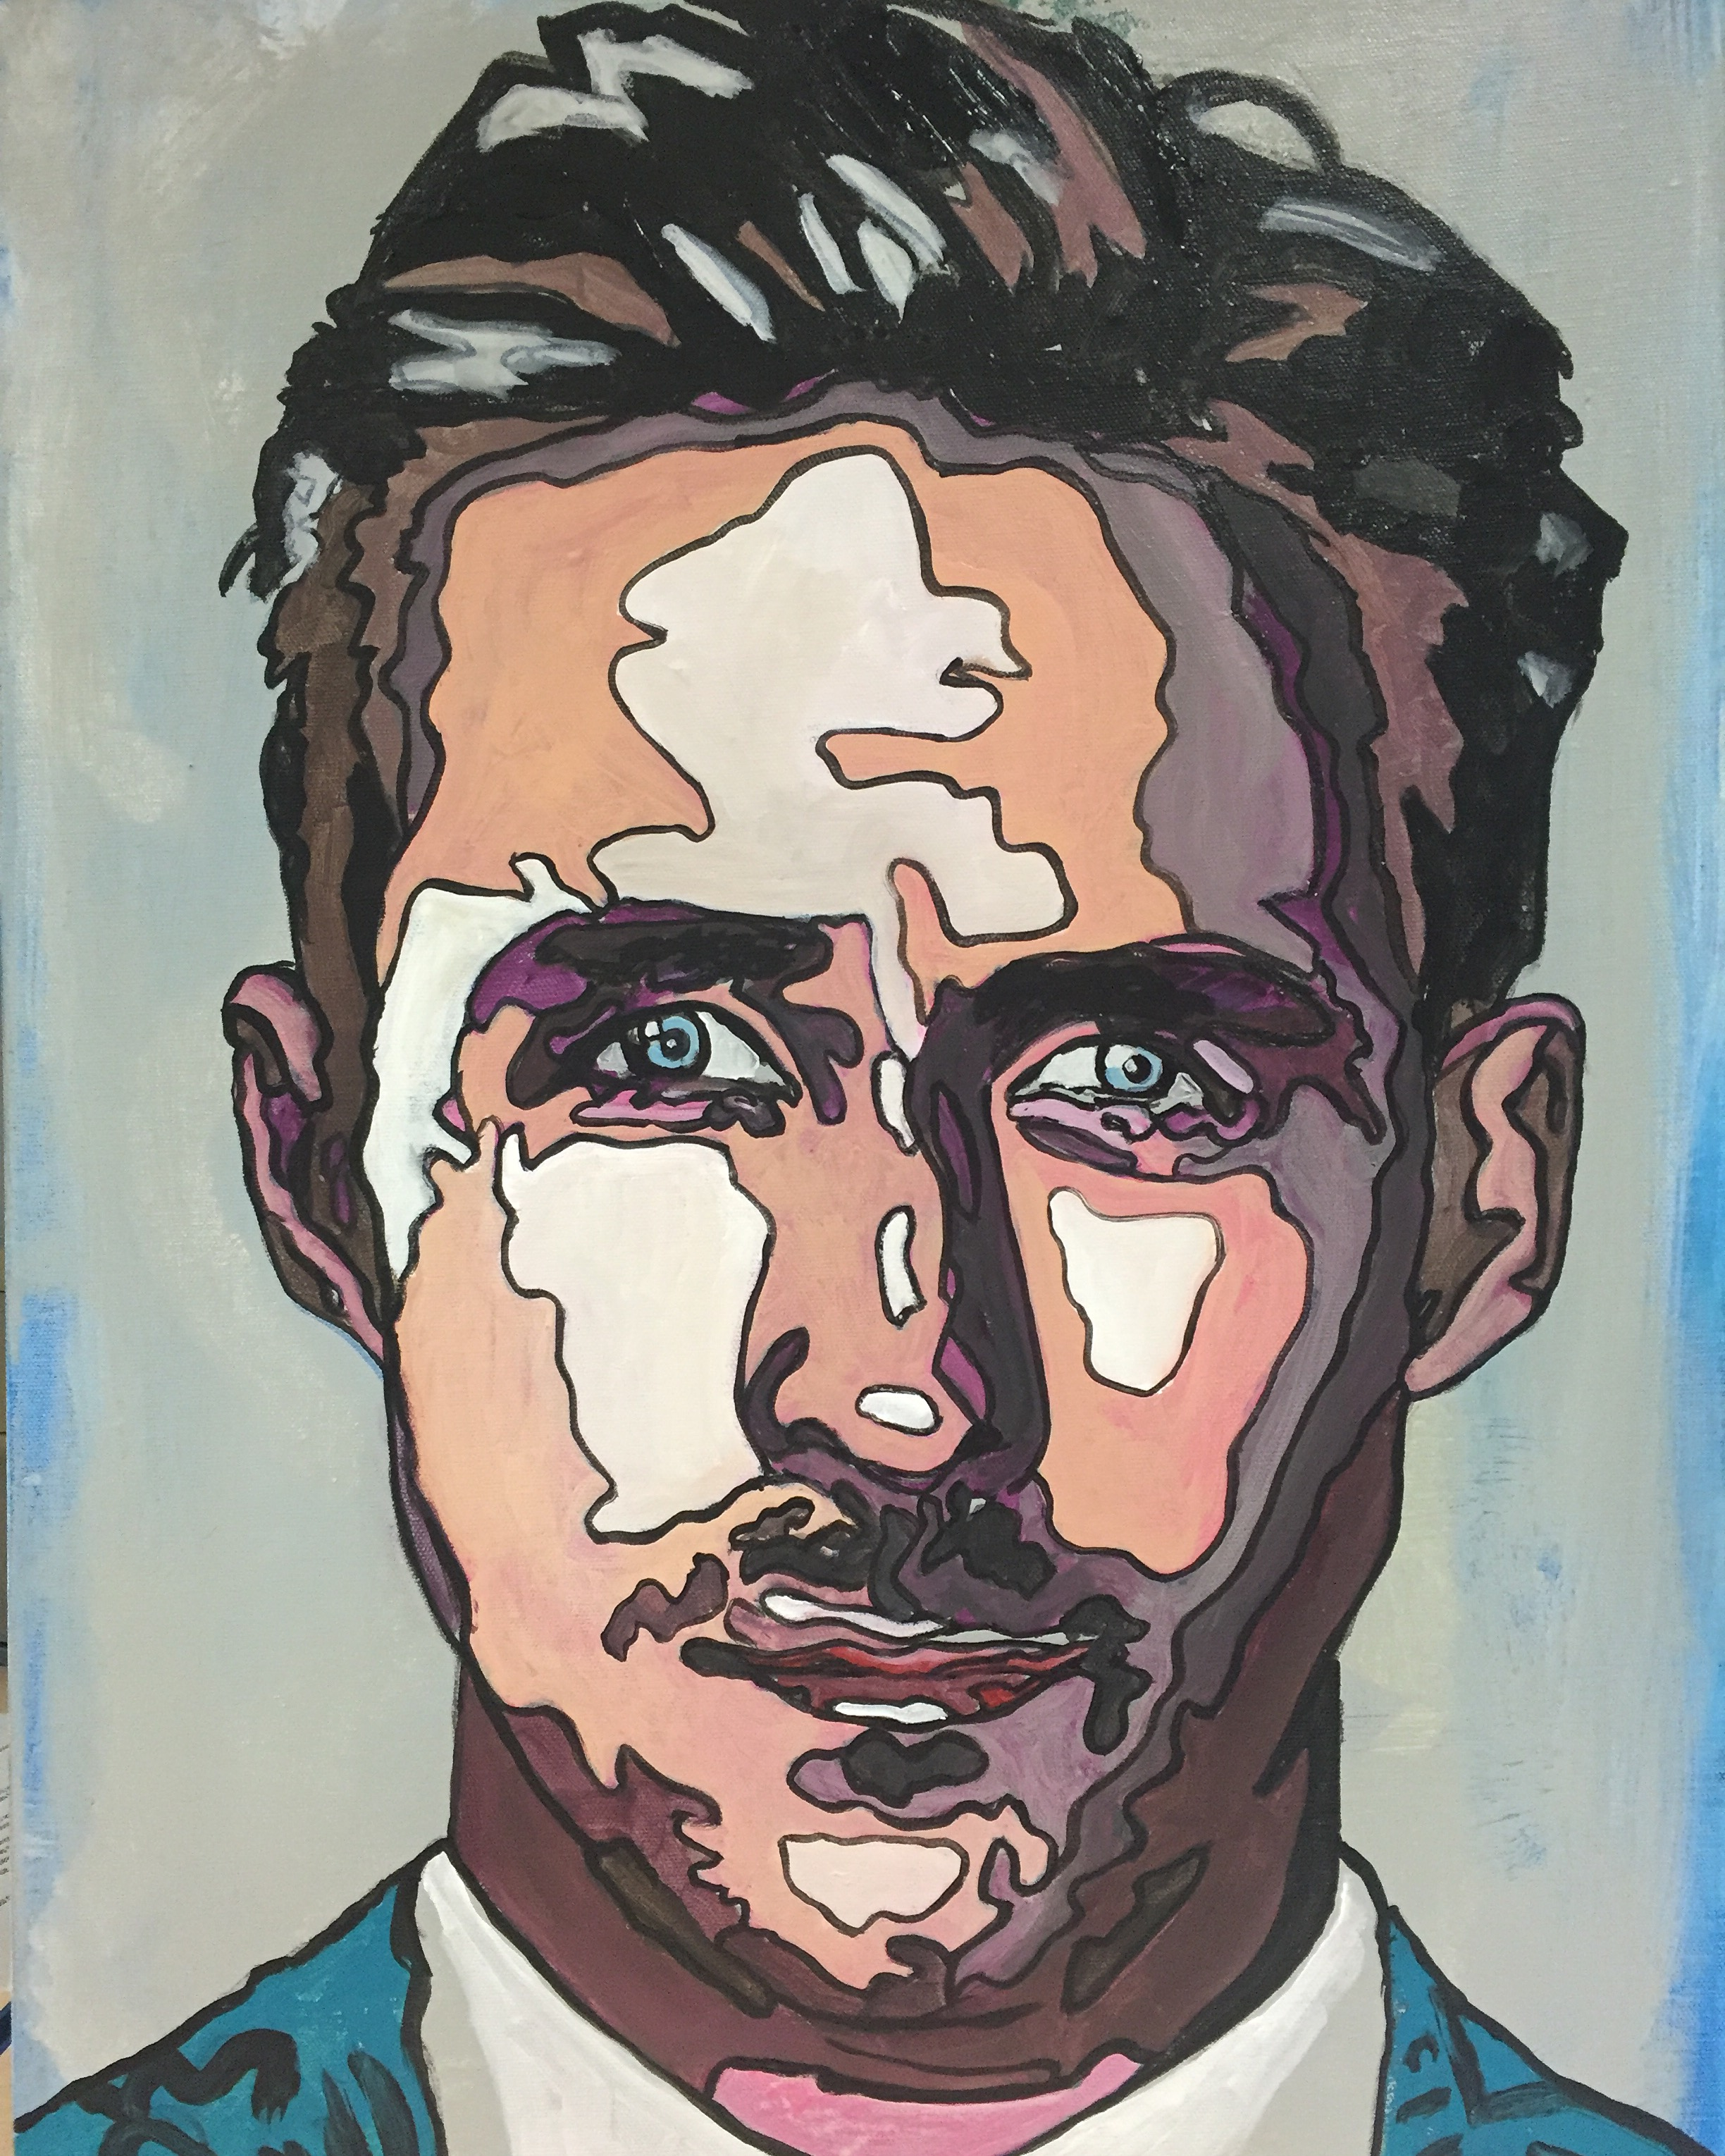 James Ruddle: Ryan Gosling